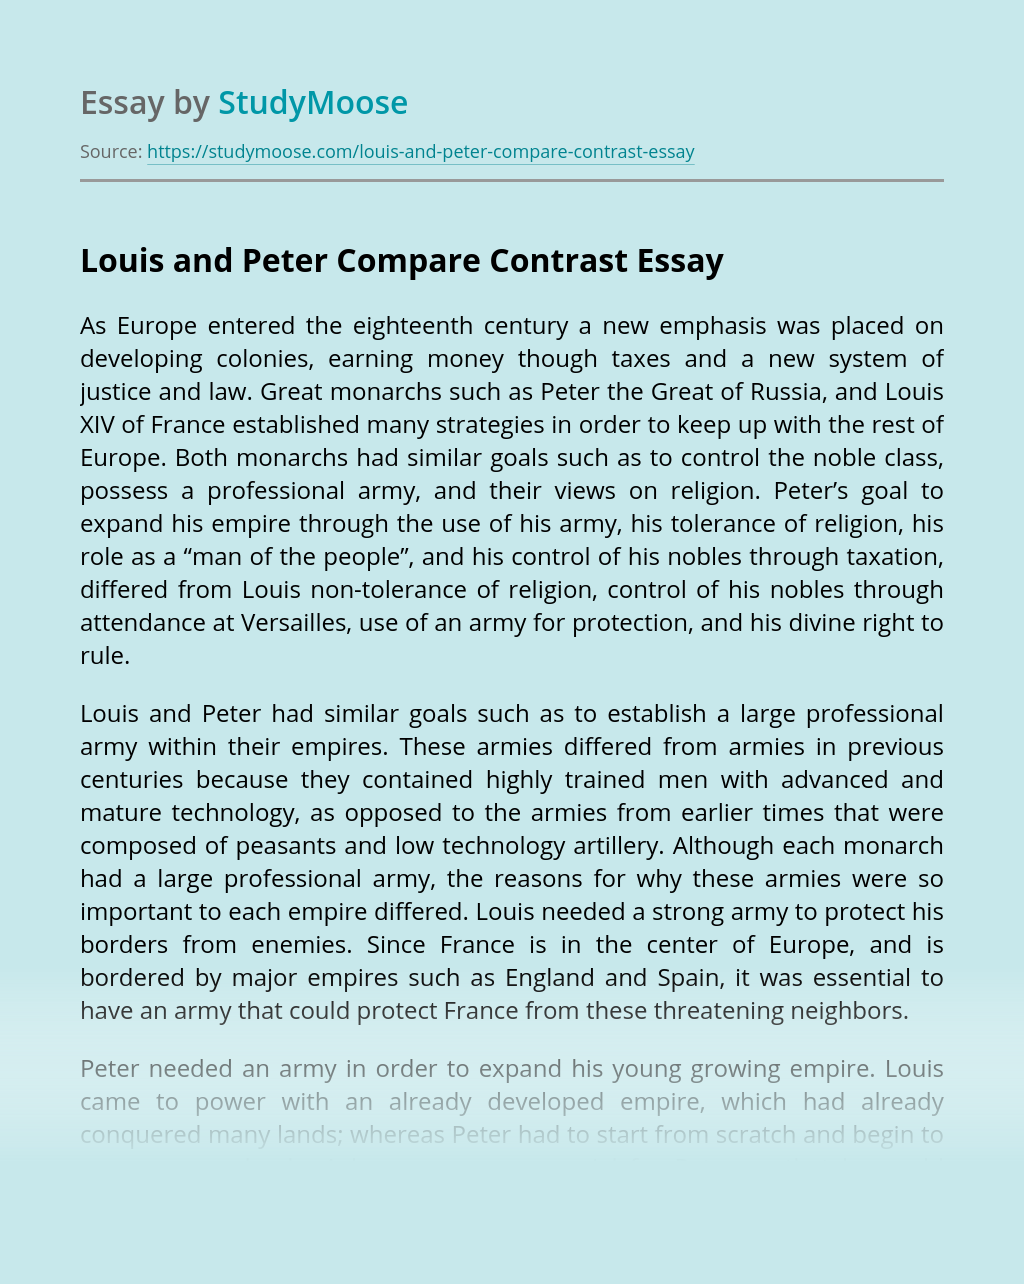 Louis and Peter Compare Contrast